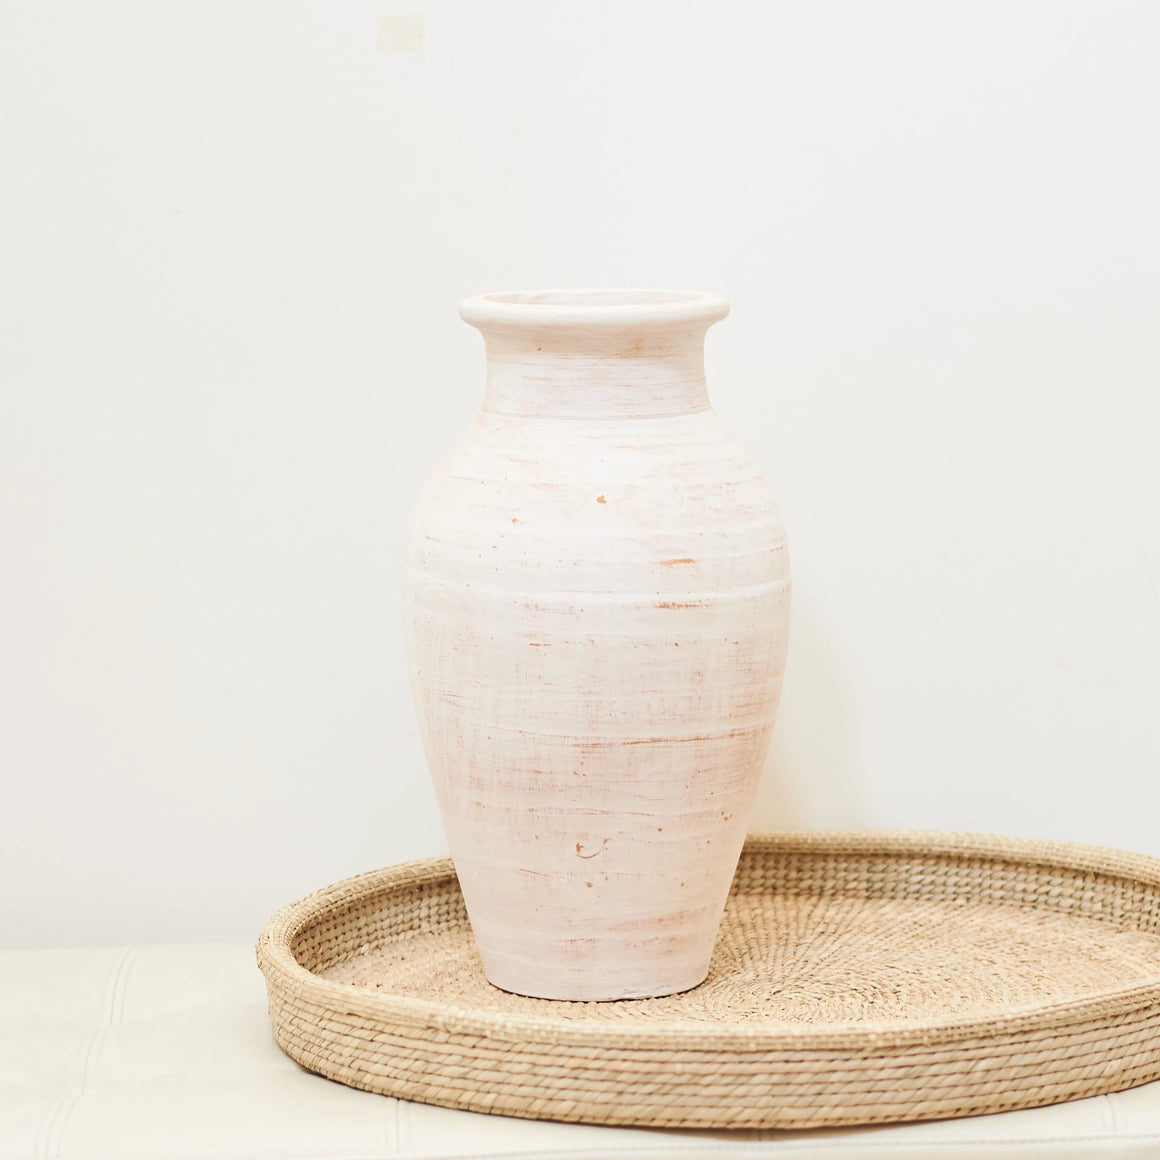 Earth Collection - Murni Vase, White Washed /سيراميك